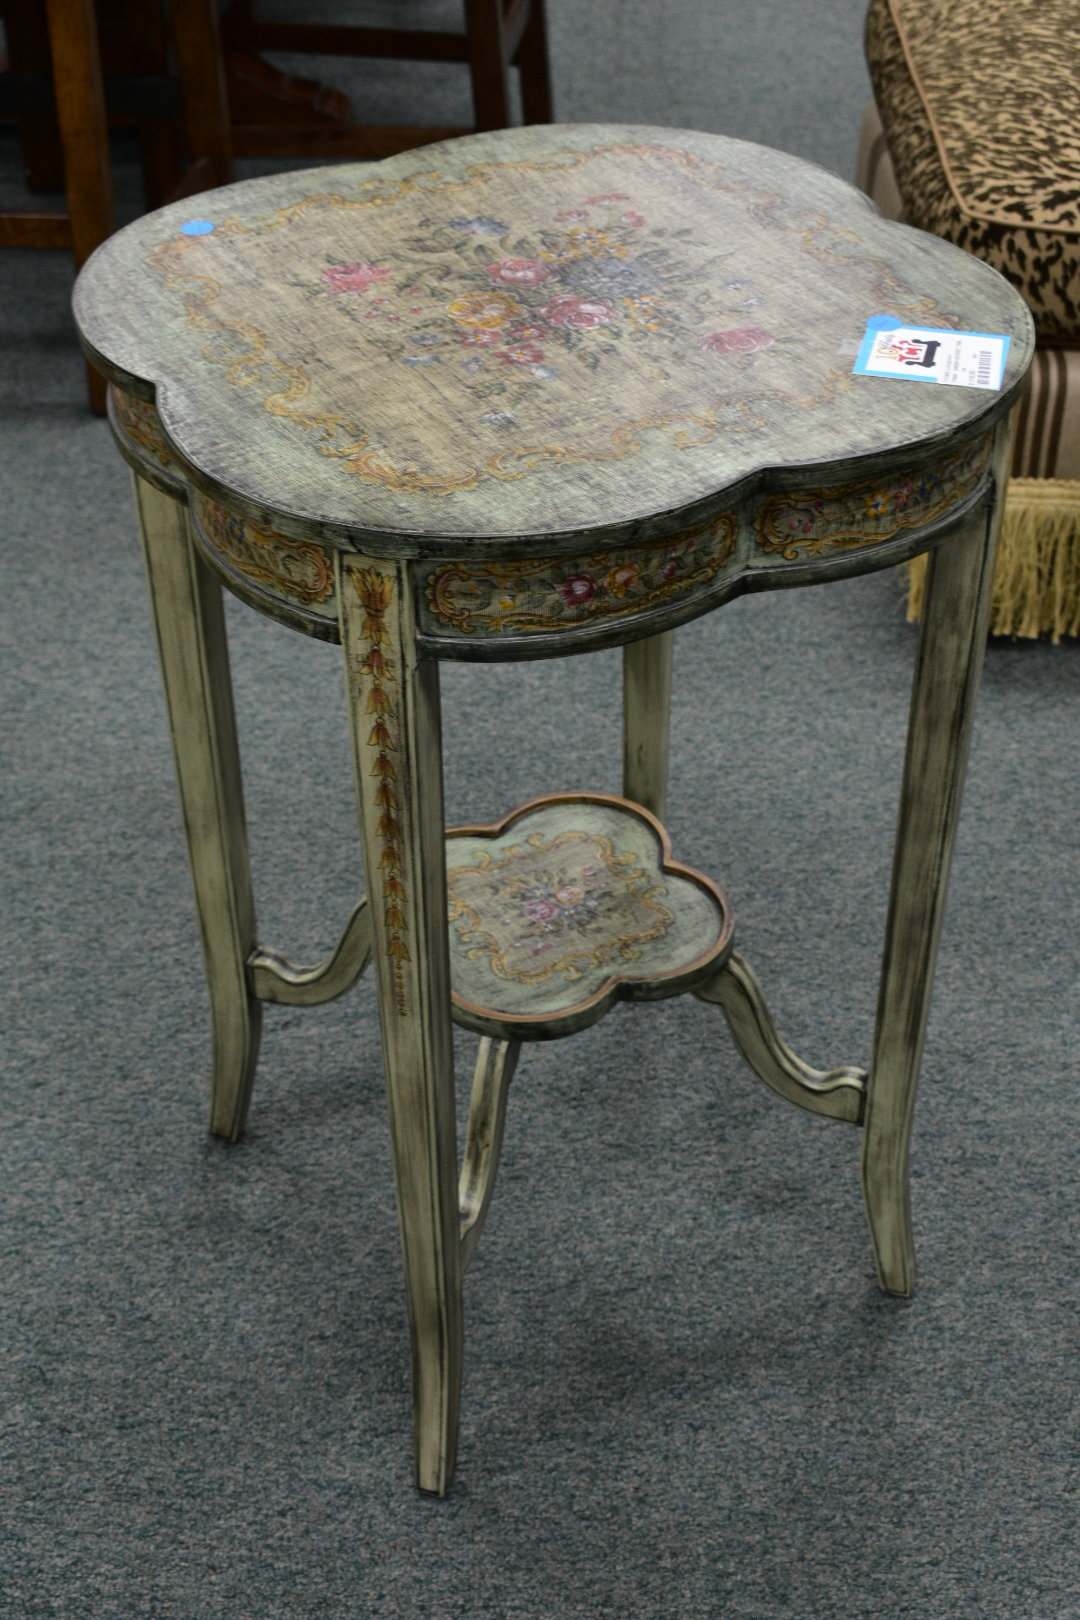 green accent table consign furniture dsc this attractive displays unique floral design that looks fabric white mirrored console owings pretty round tablecloths chestnut wood slab